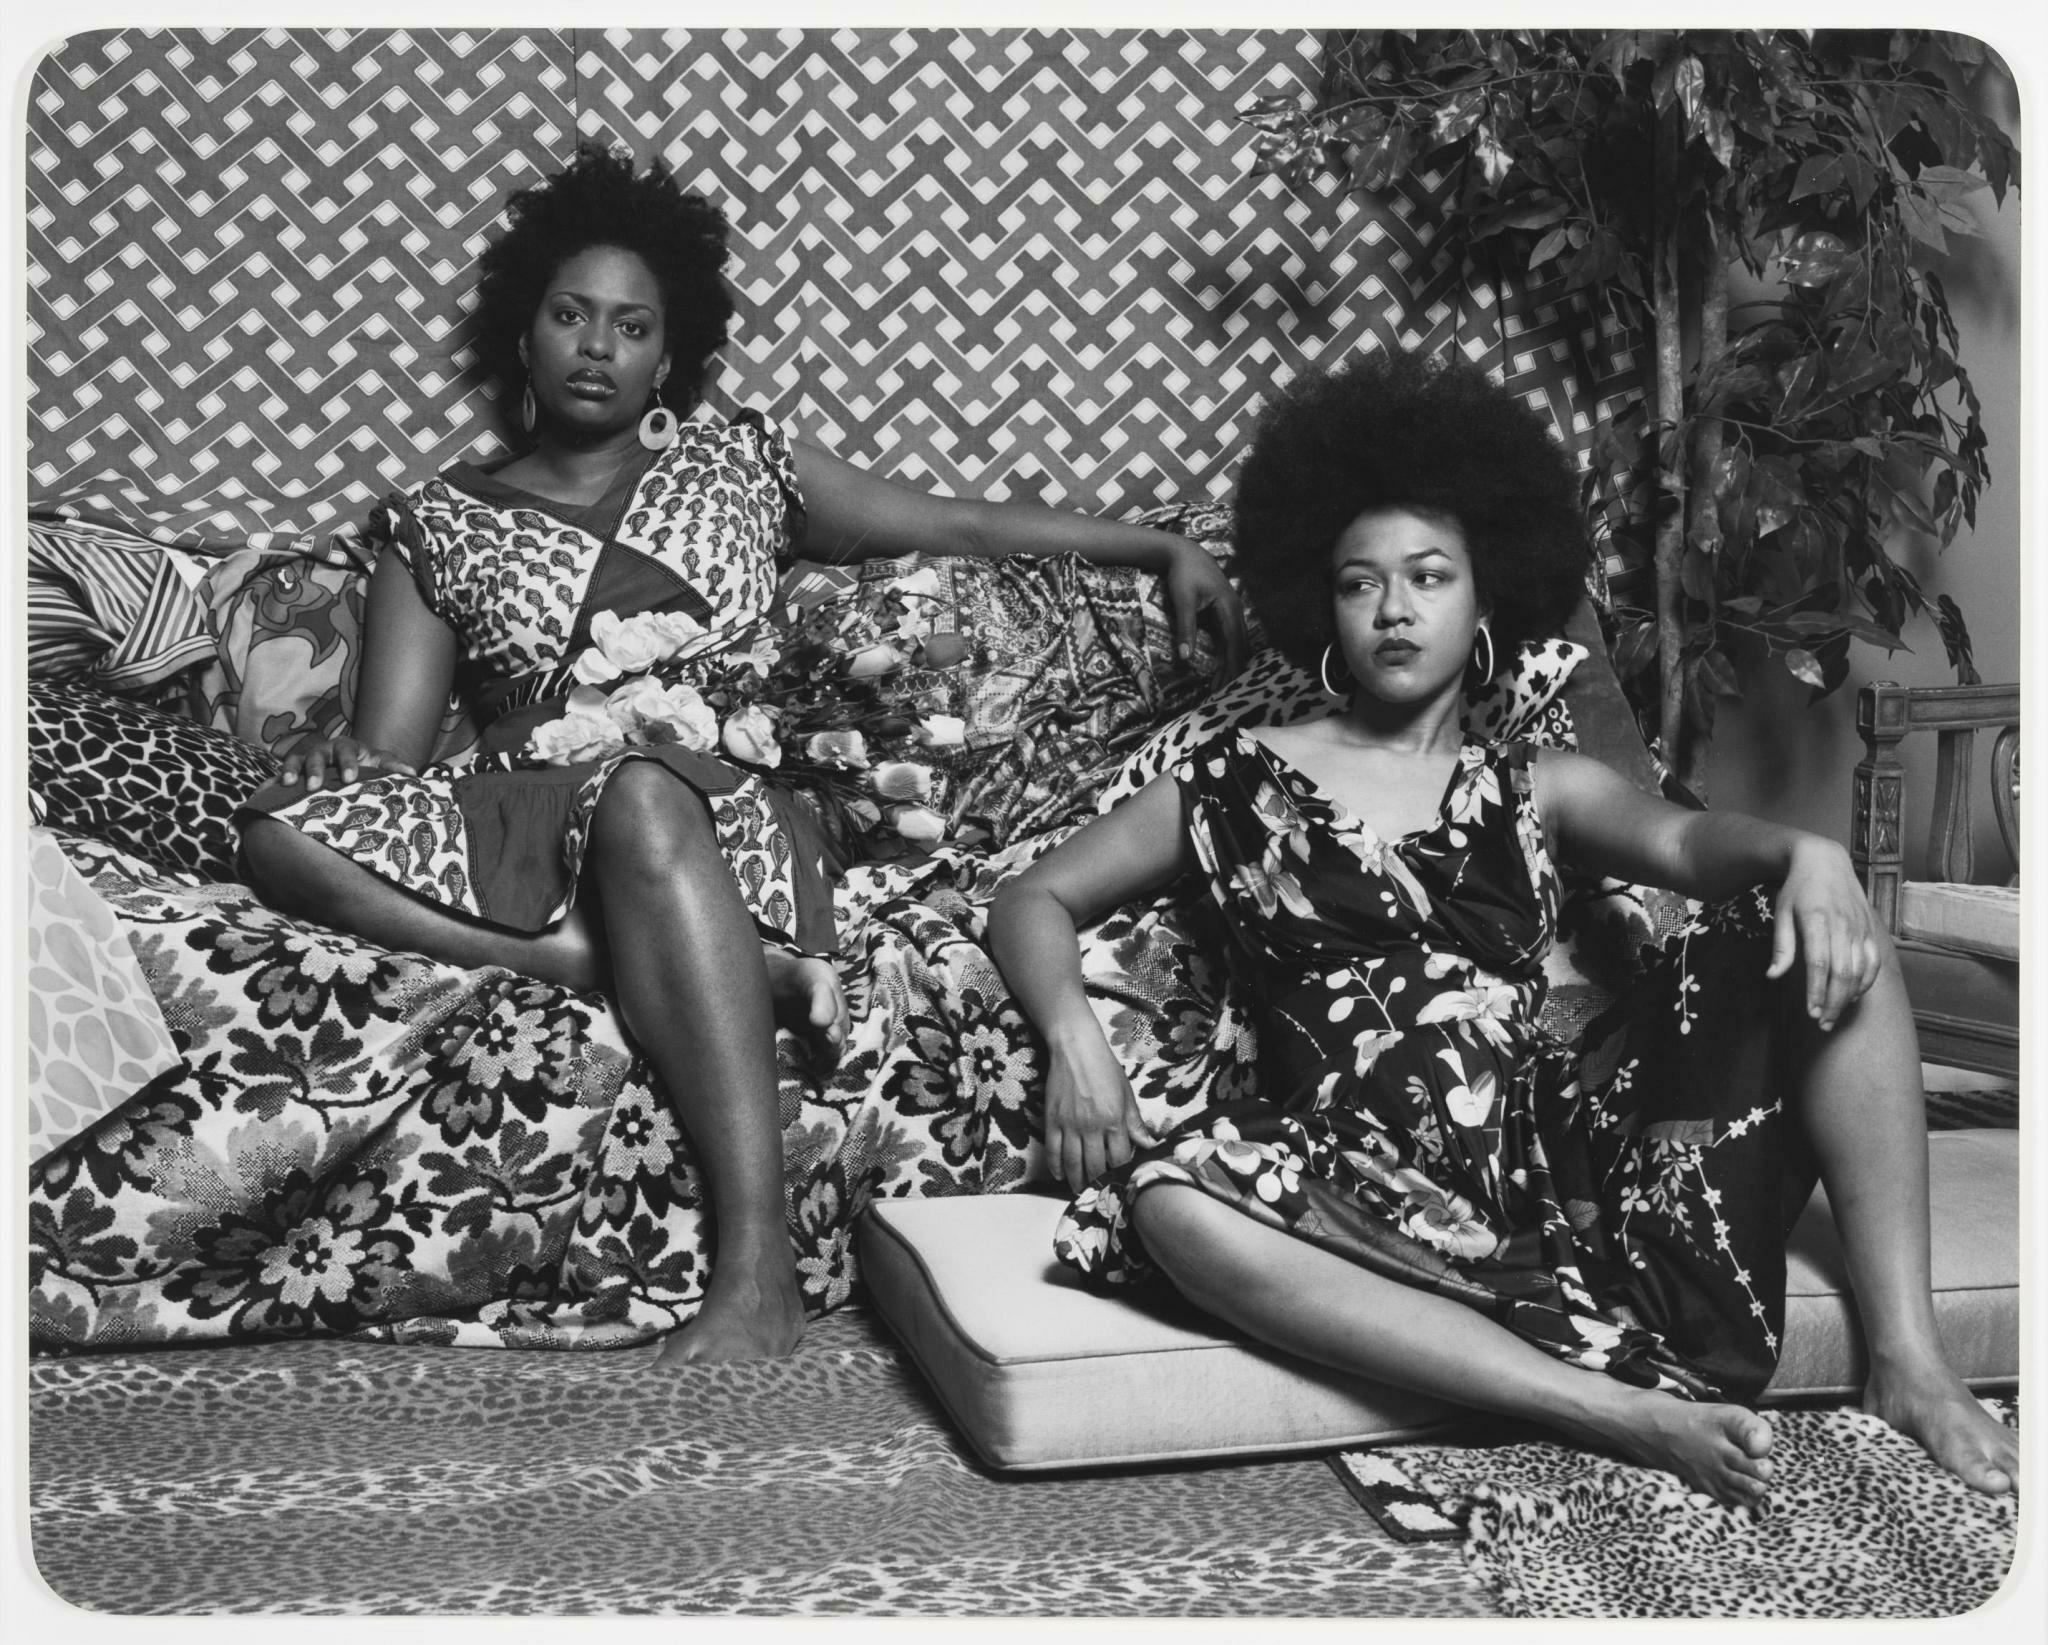 Two Black women wearing vibrantly patterned dresses sit in a similarly patterned interior.